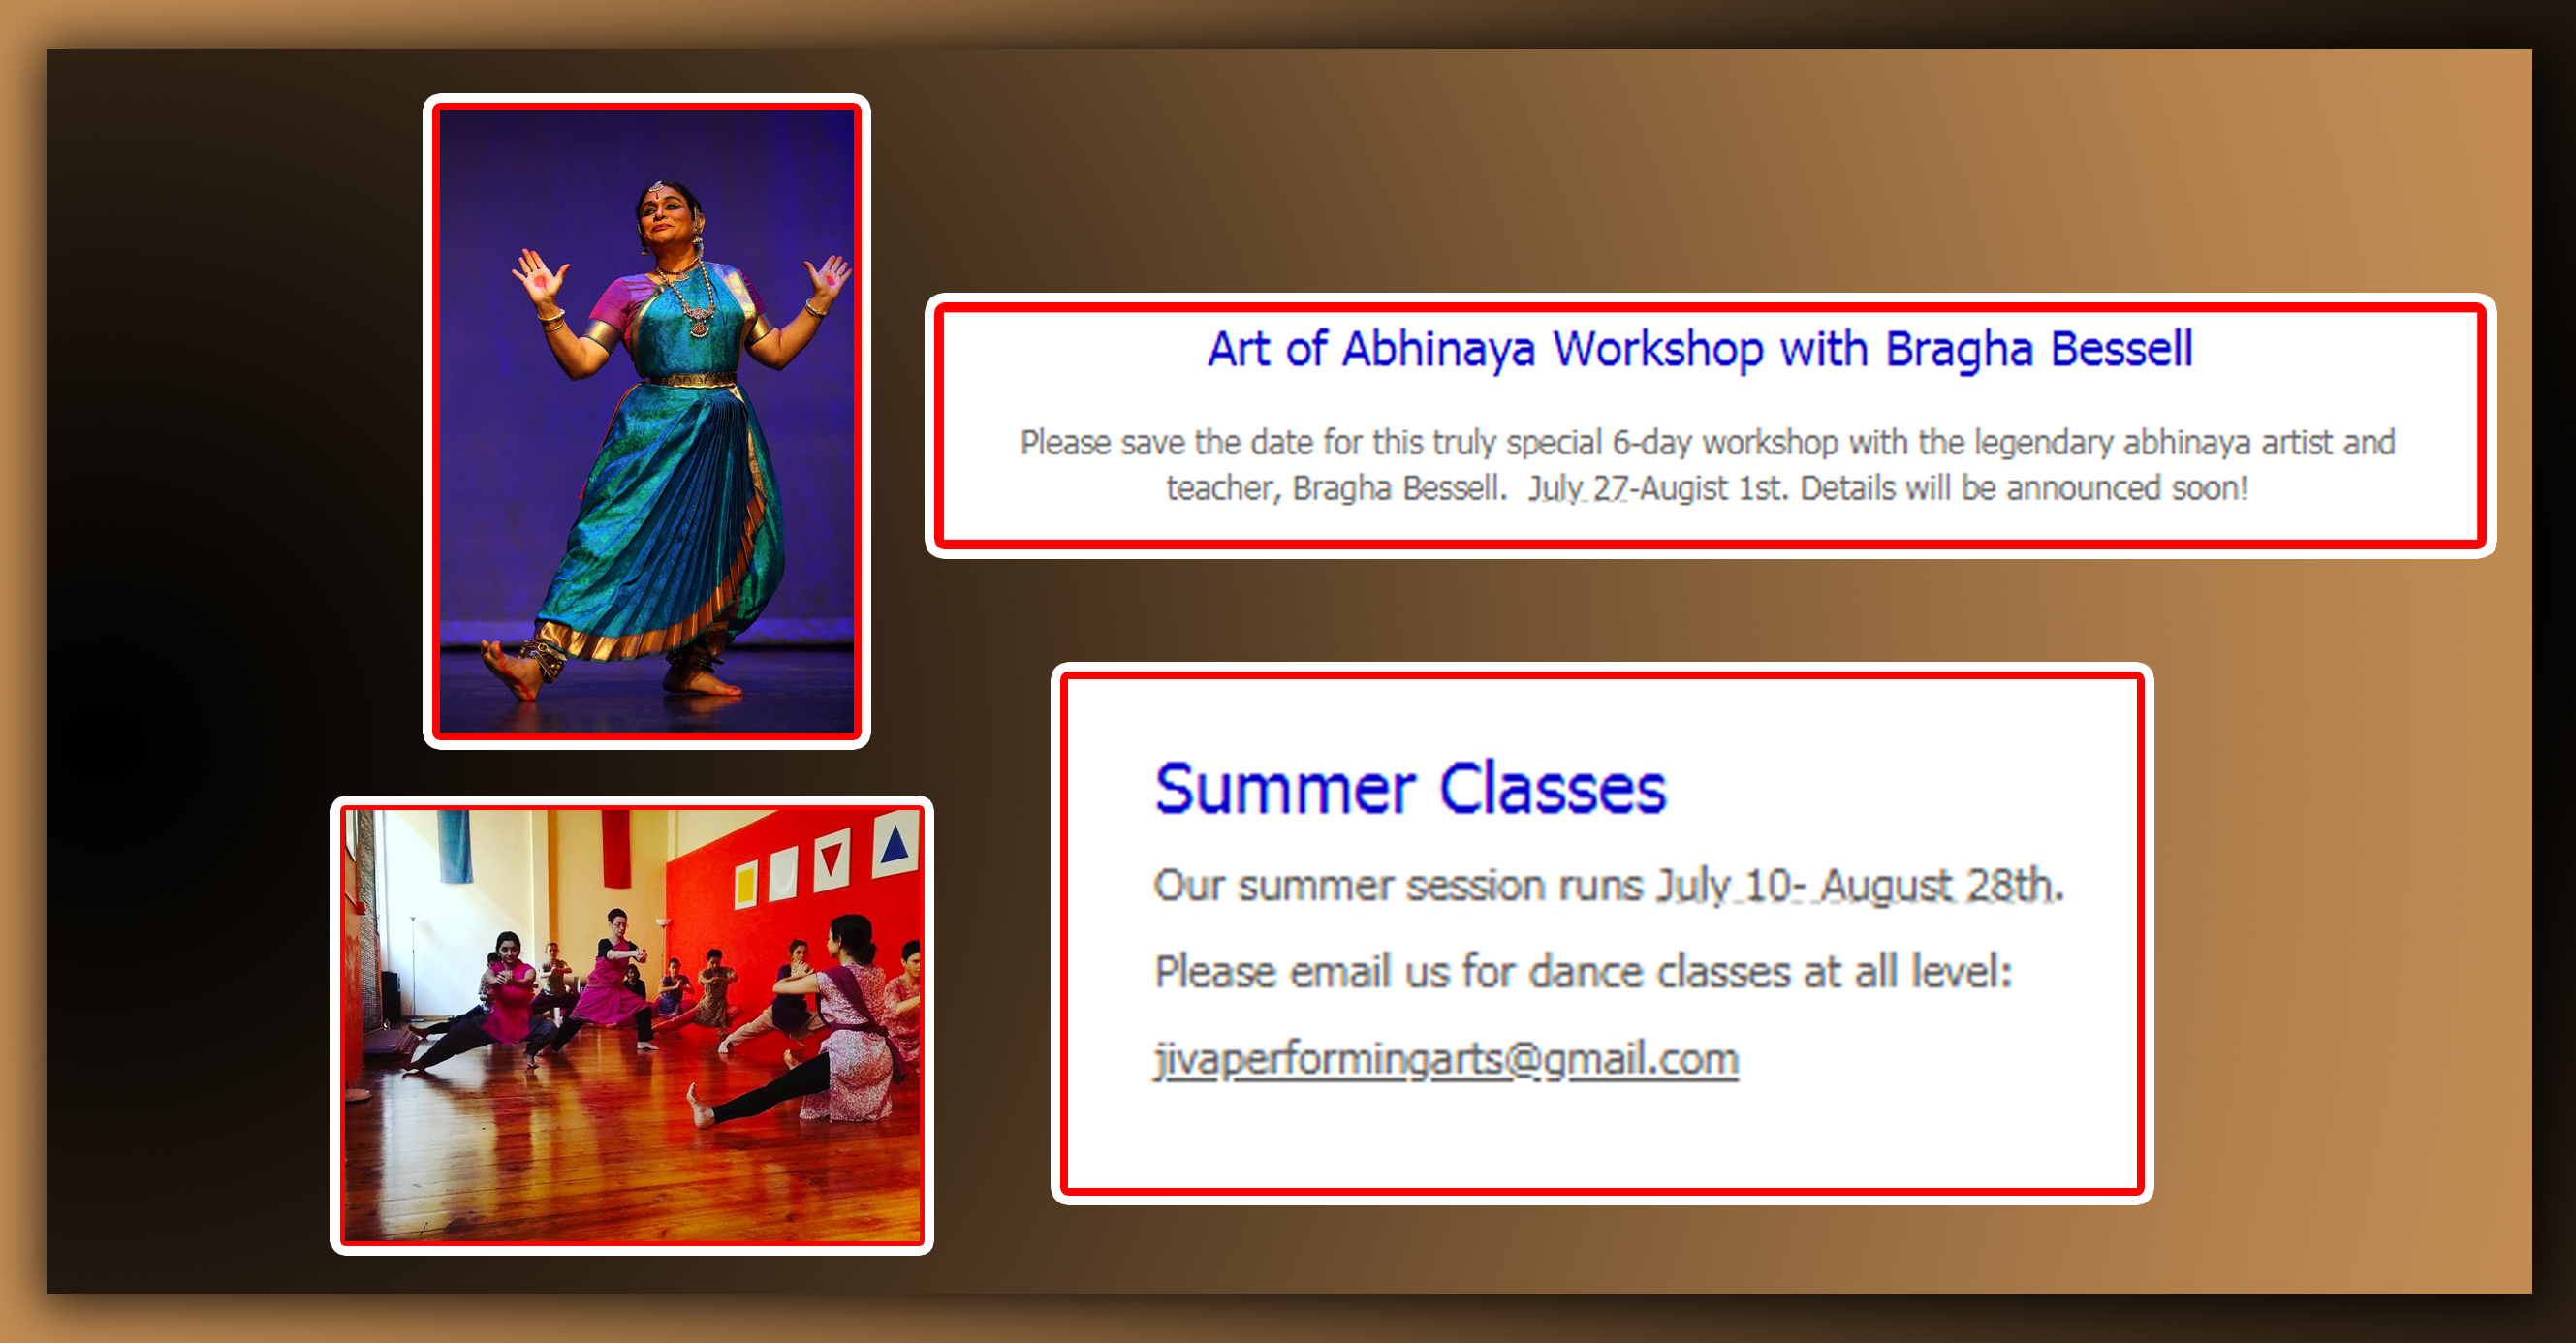 Art of Abhinaya Workshop With Bragha Bessell